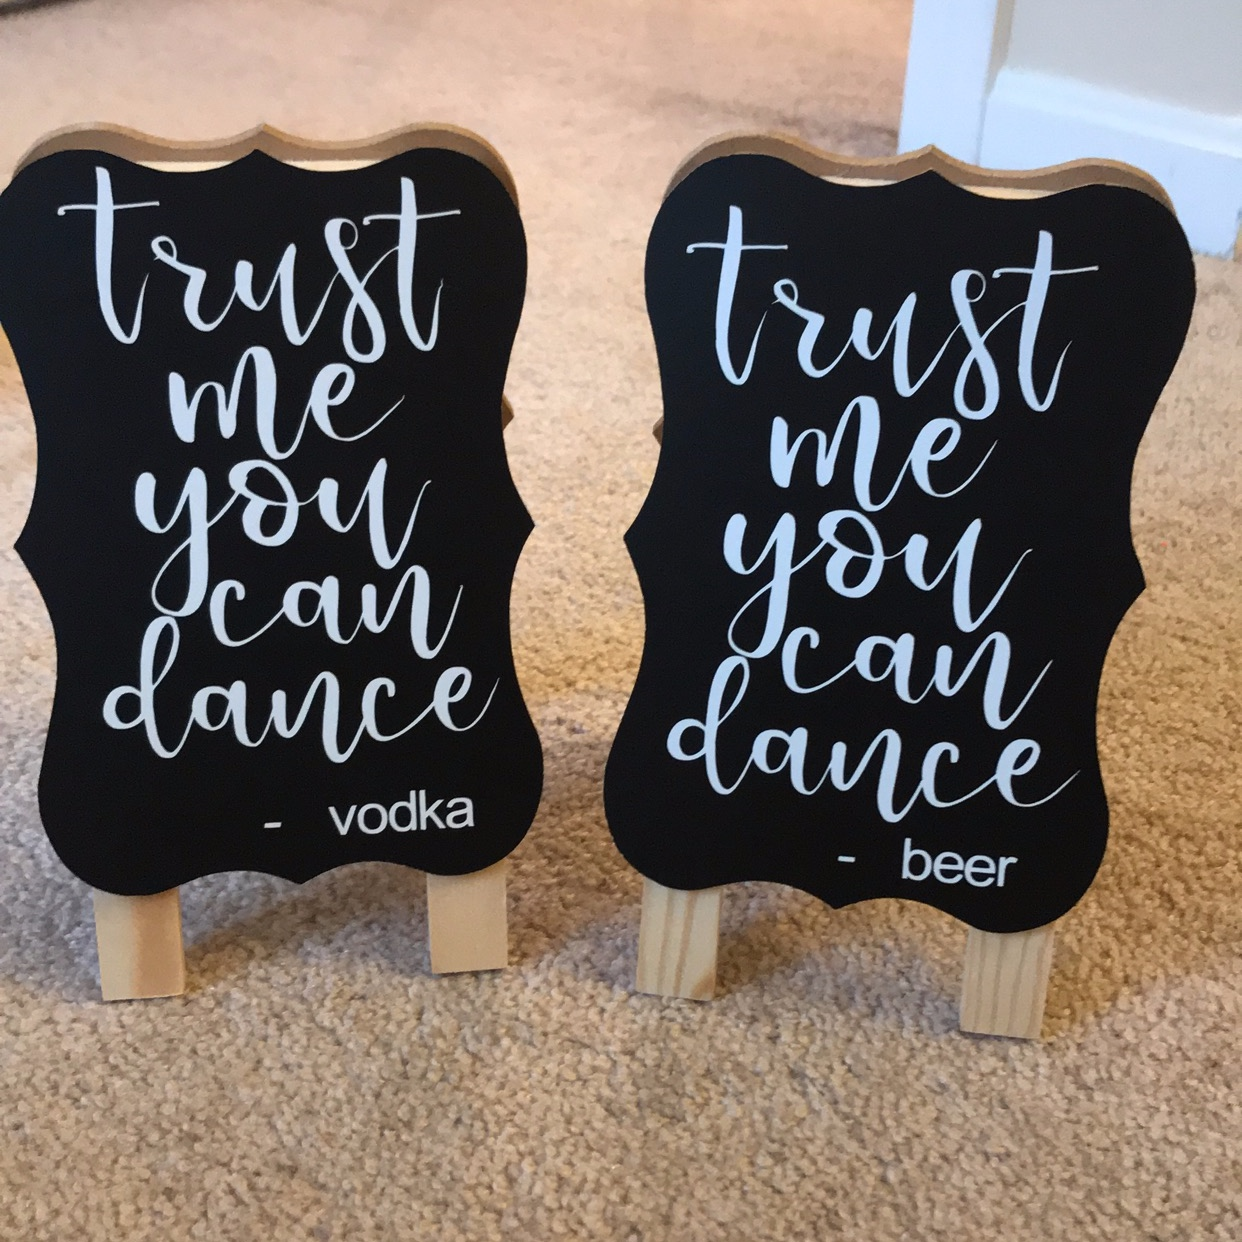 i also made bar signs for our wedding. I got these mini chalkboards from Michaels for $4.99 each.